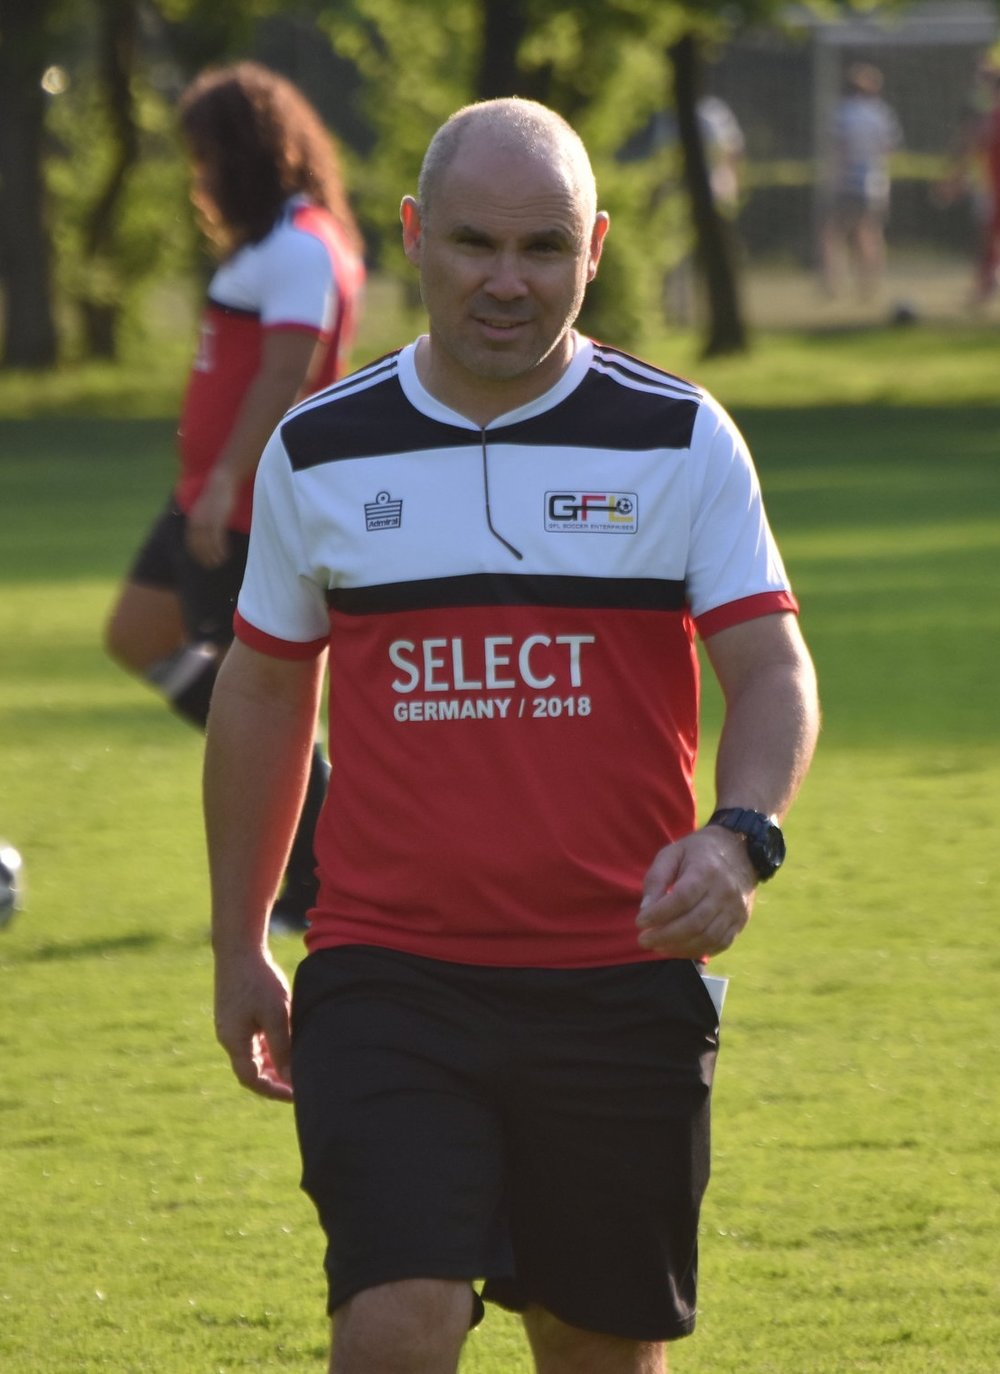 JAIME BYRNE - PROGRAM DIRECTORCoach Jaime has been involved in soccer for over 30 years, from playing with Elite Youth, to College in Europe, to Competitive domestically, and co-organizing International Showcases.Having played and worked with Revolver FC for the better part of a decade, his mission as a coach is to identify players' abilities & strengths to bring them together and perform their best as a team. From there, he seeks to further advance the team above their competitors to set them apart from their peers, and grow to obtain more challenging real-life & unique playing opportunities & programs.Coach Jaime's coaching style is hands-on & verbal, instructing by example, side-by-side with players, with the highest of expectations for each individual and the team overall.